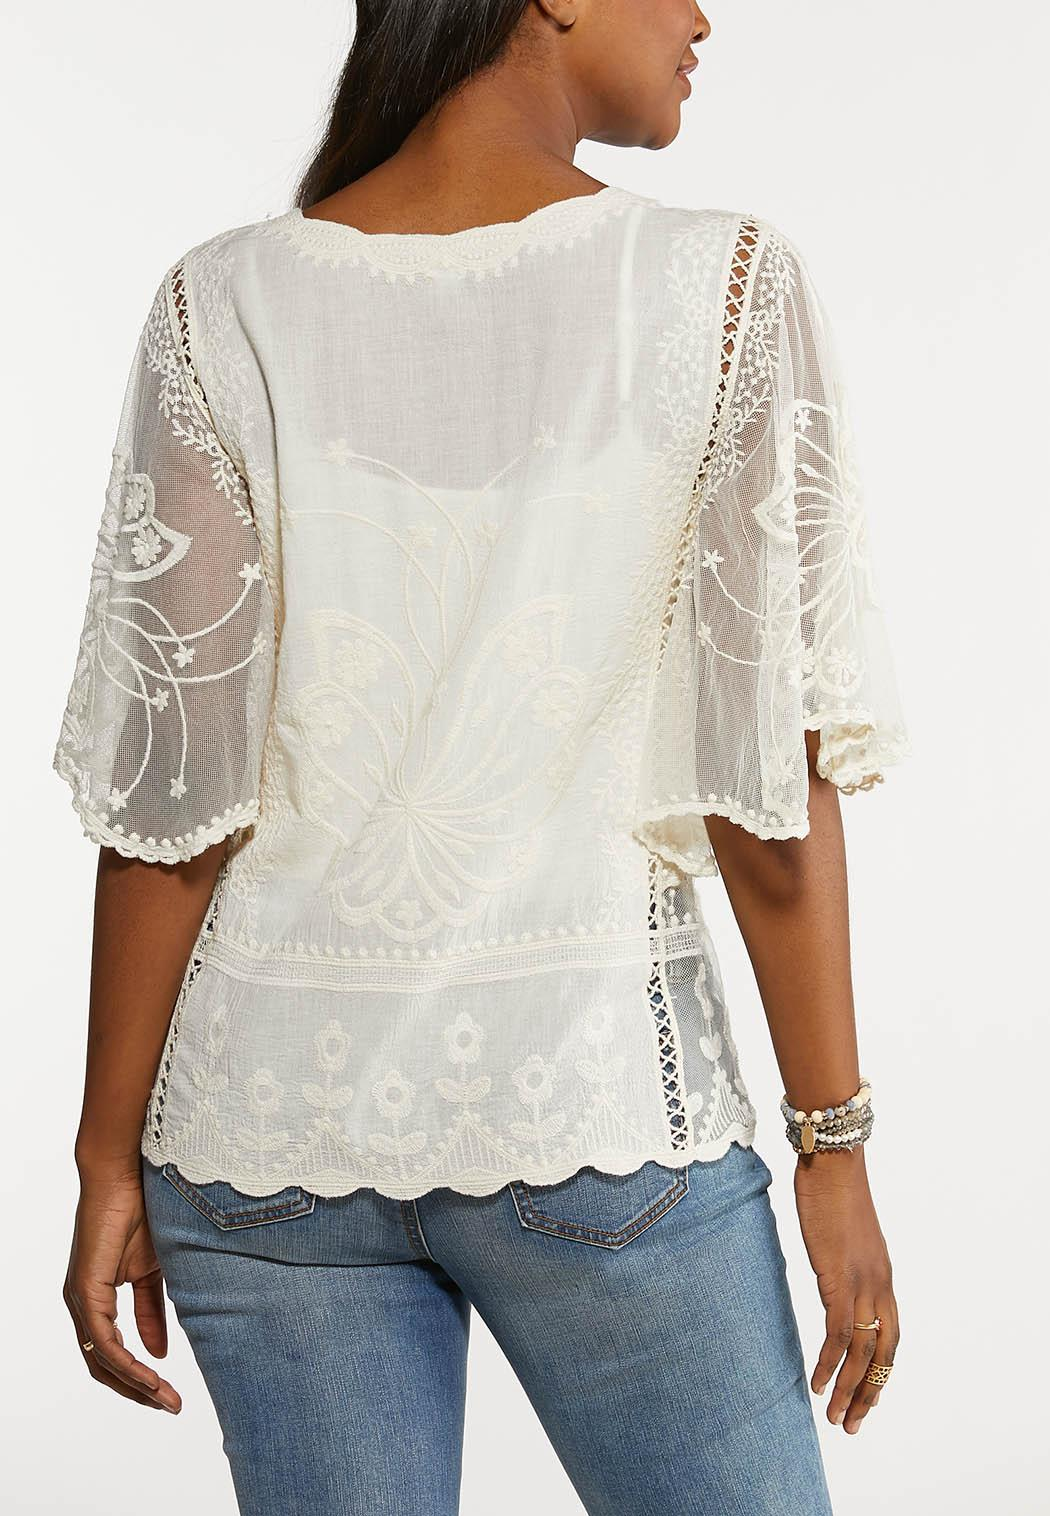 Ivory Angel Sleeve Top (Item #44188443)